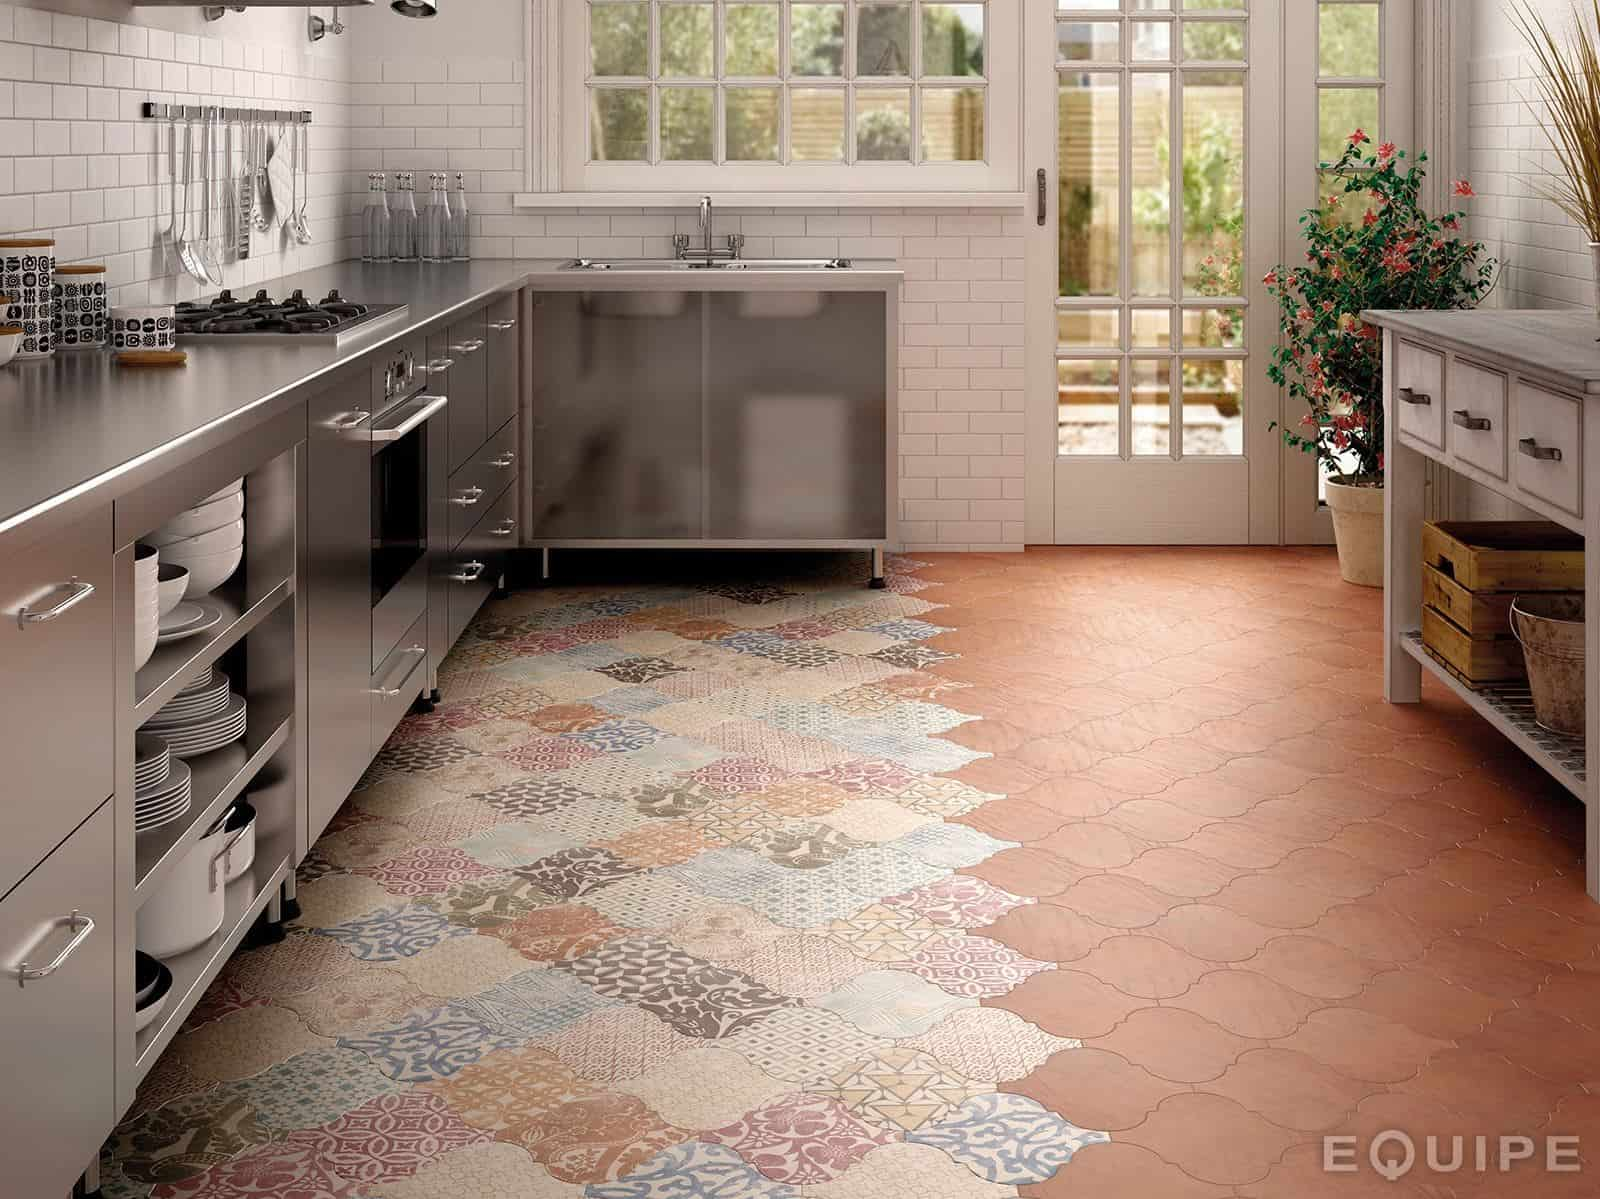 21 arabesque tile ideas for floor wall and backsplash kitchen floor tiles View in gallery arabesque tile kitchen floor patchwork equipe 4